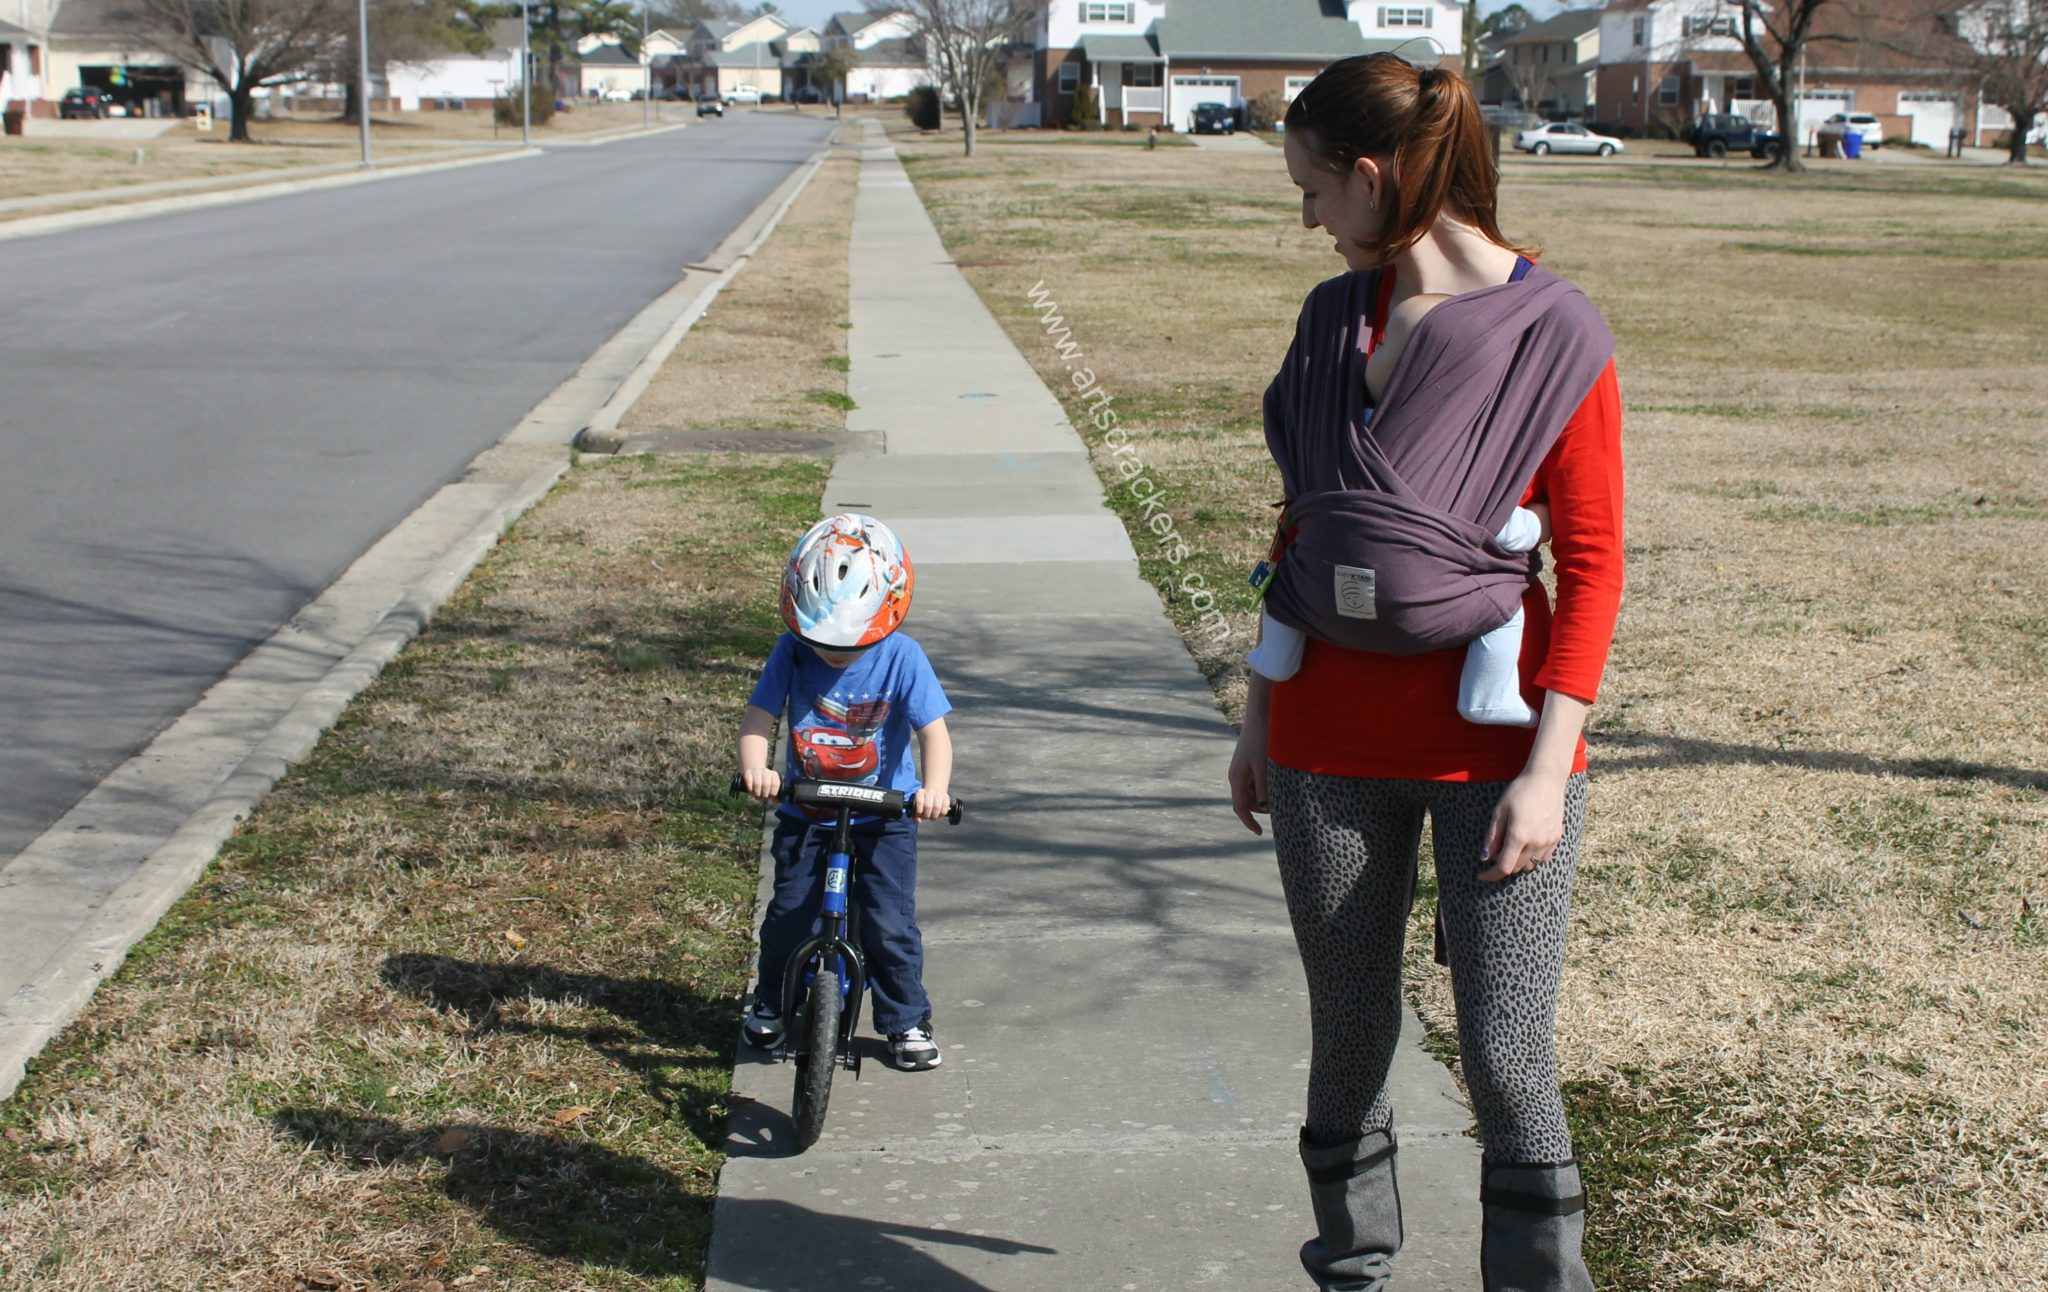 Strider Bike Riding and Baby Wearing On a Walk